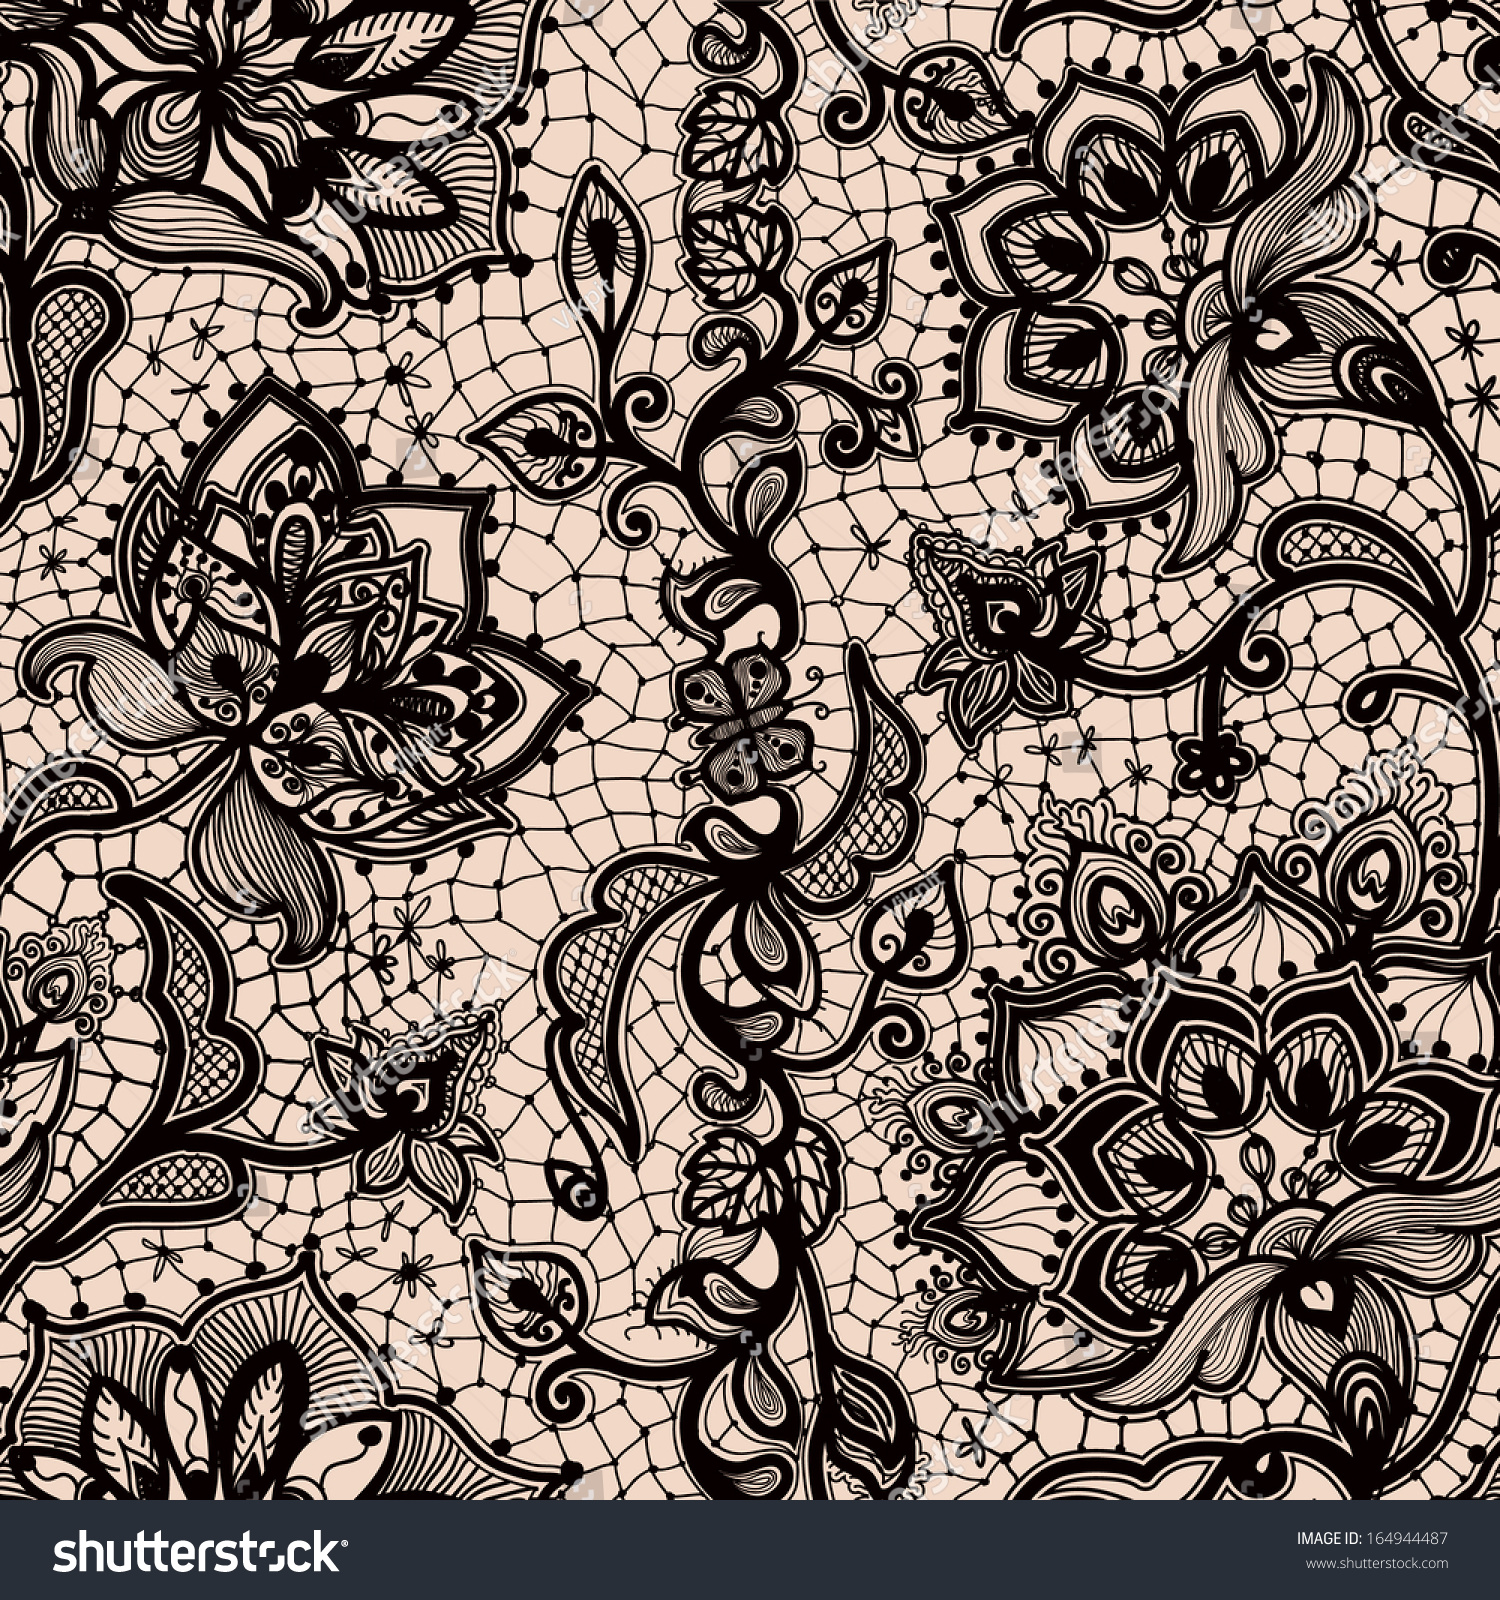 Abstract Seamless Lace Pattern Flowers Butterflies Stock Vector ...